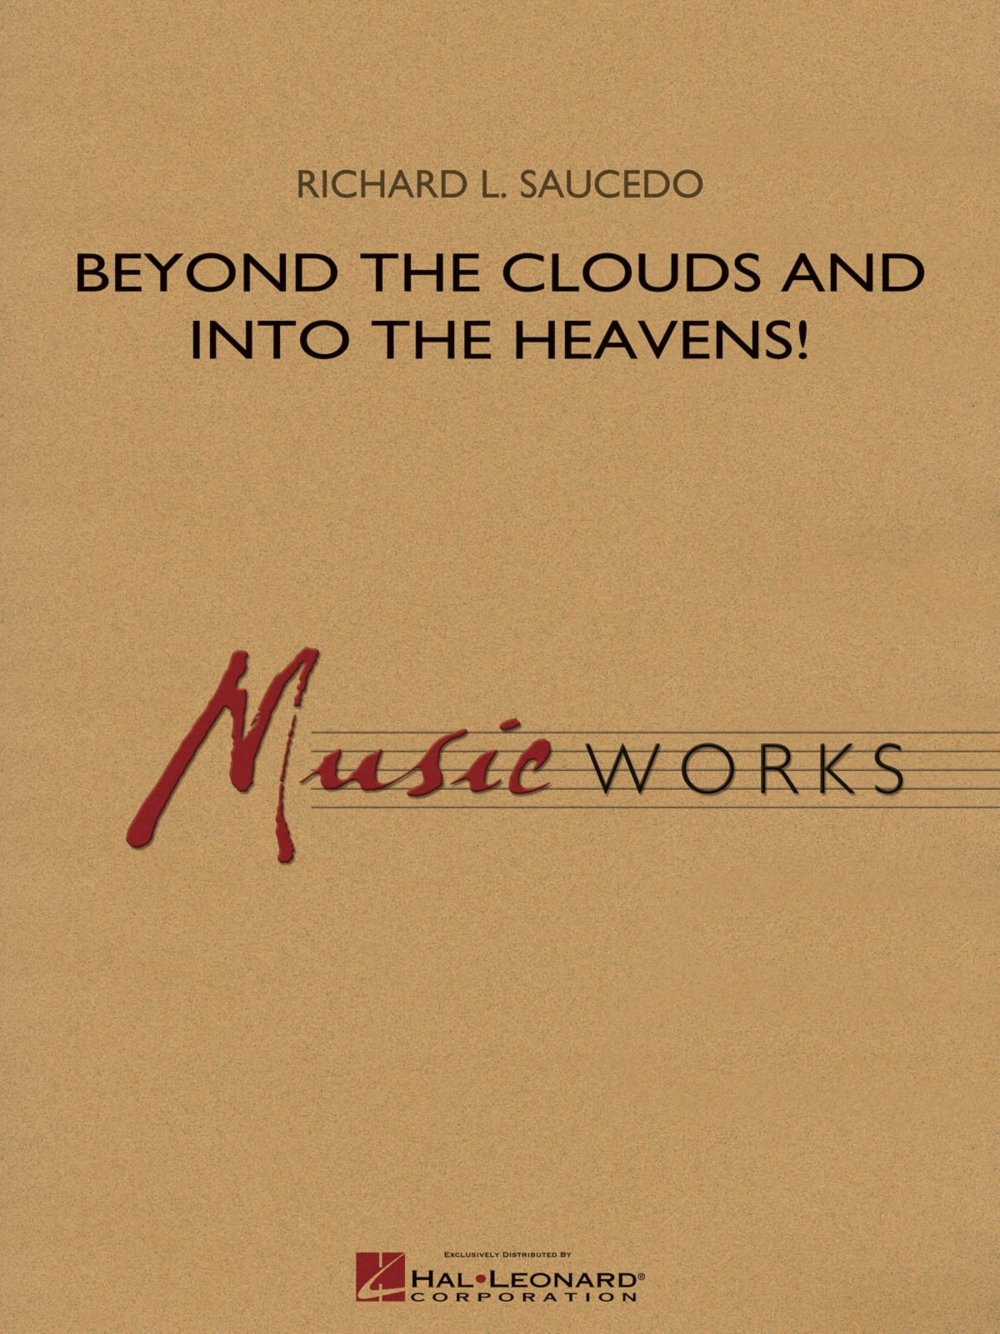 Hal Leonard Beyond the Clouds and Into the Heavens! Concert Band Level 4 Composed by Richard L. Saucedo ebook